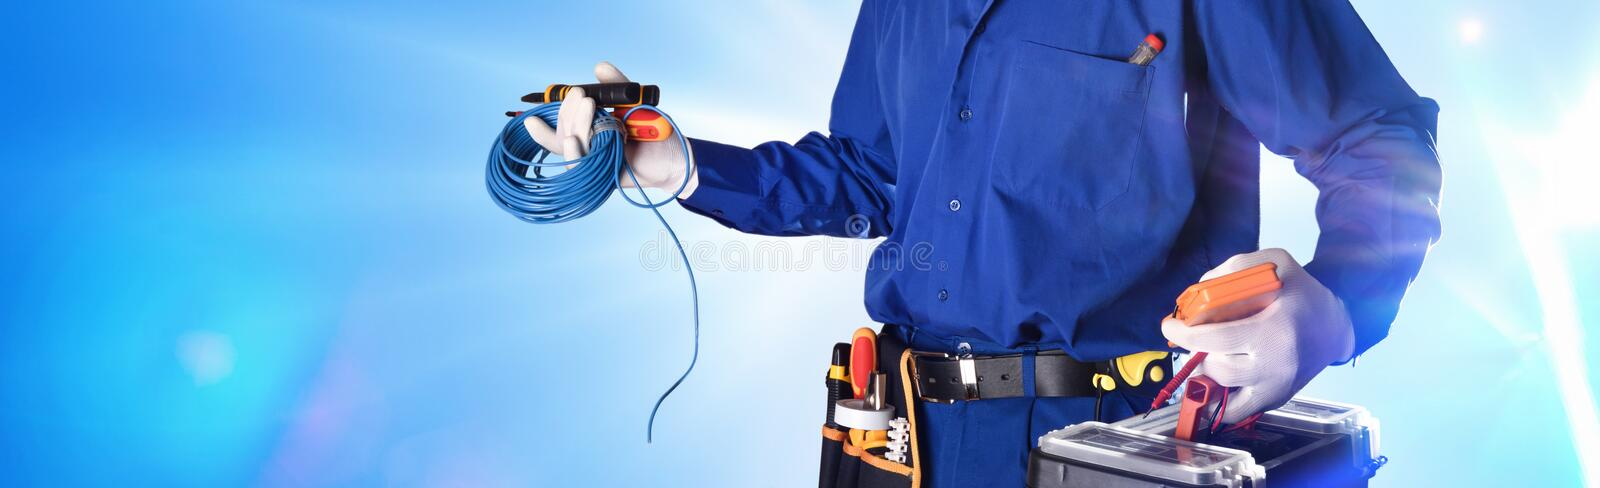 Electrician with tools and electrical equipment isolated with lights stock photo